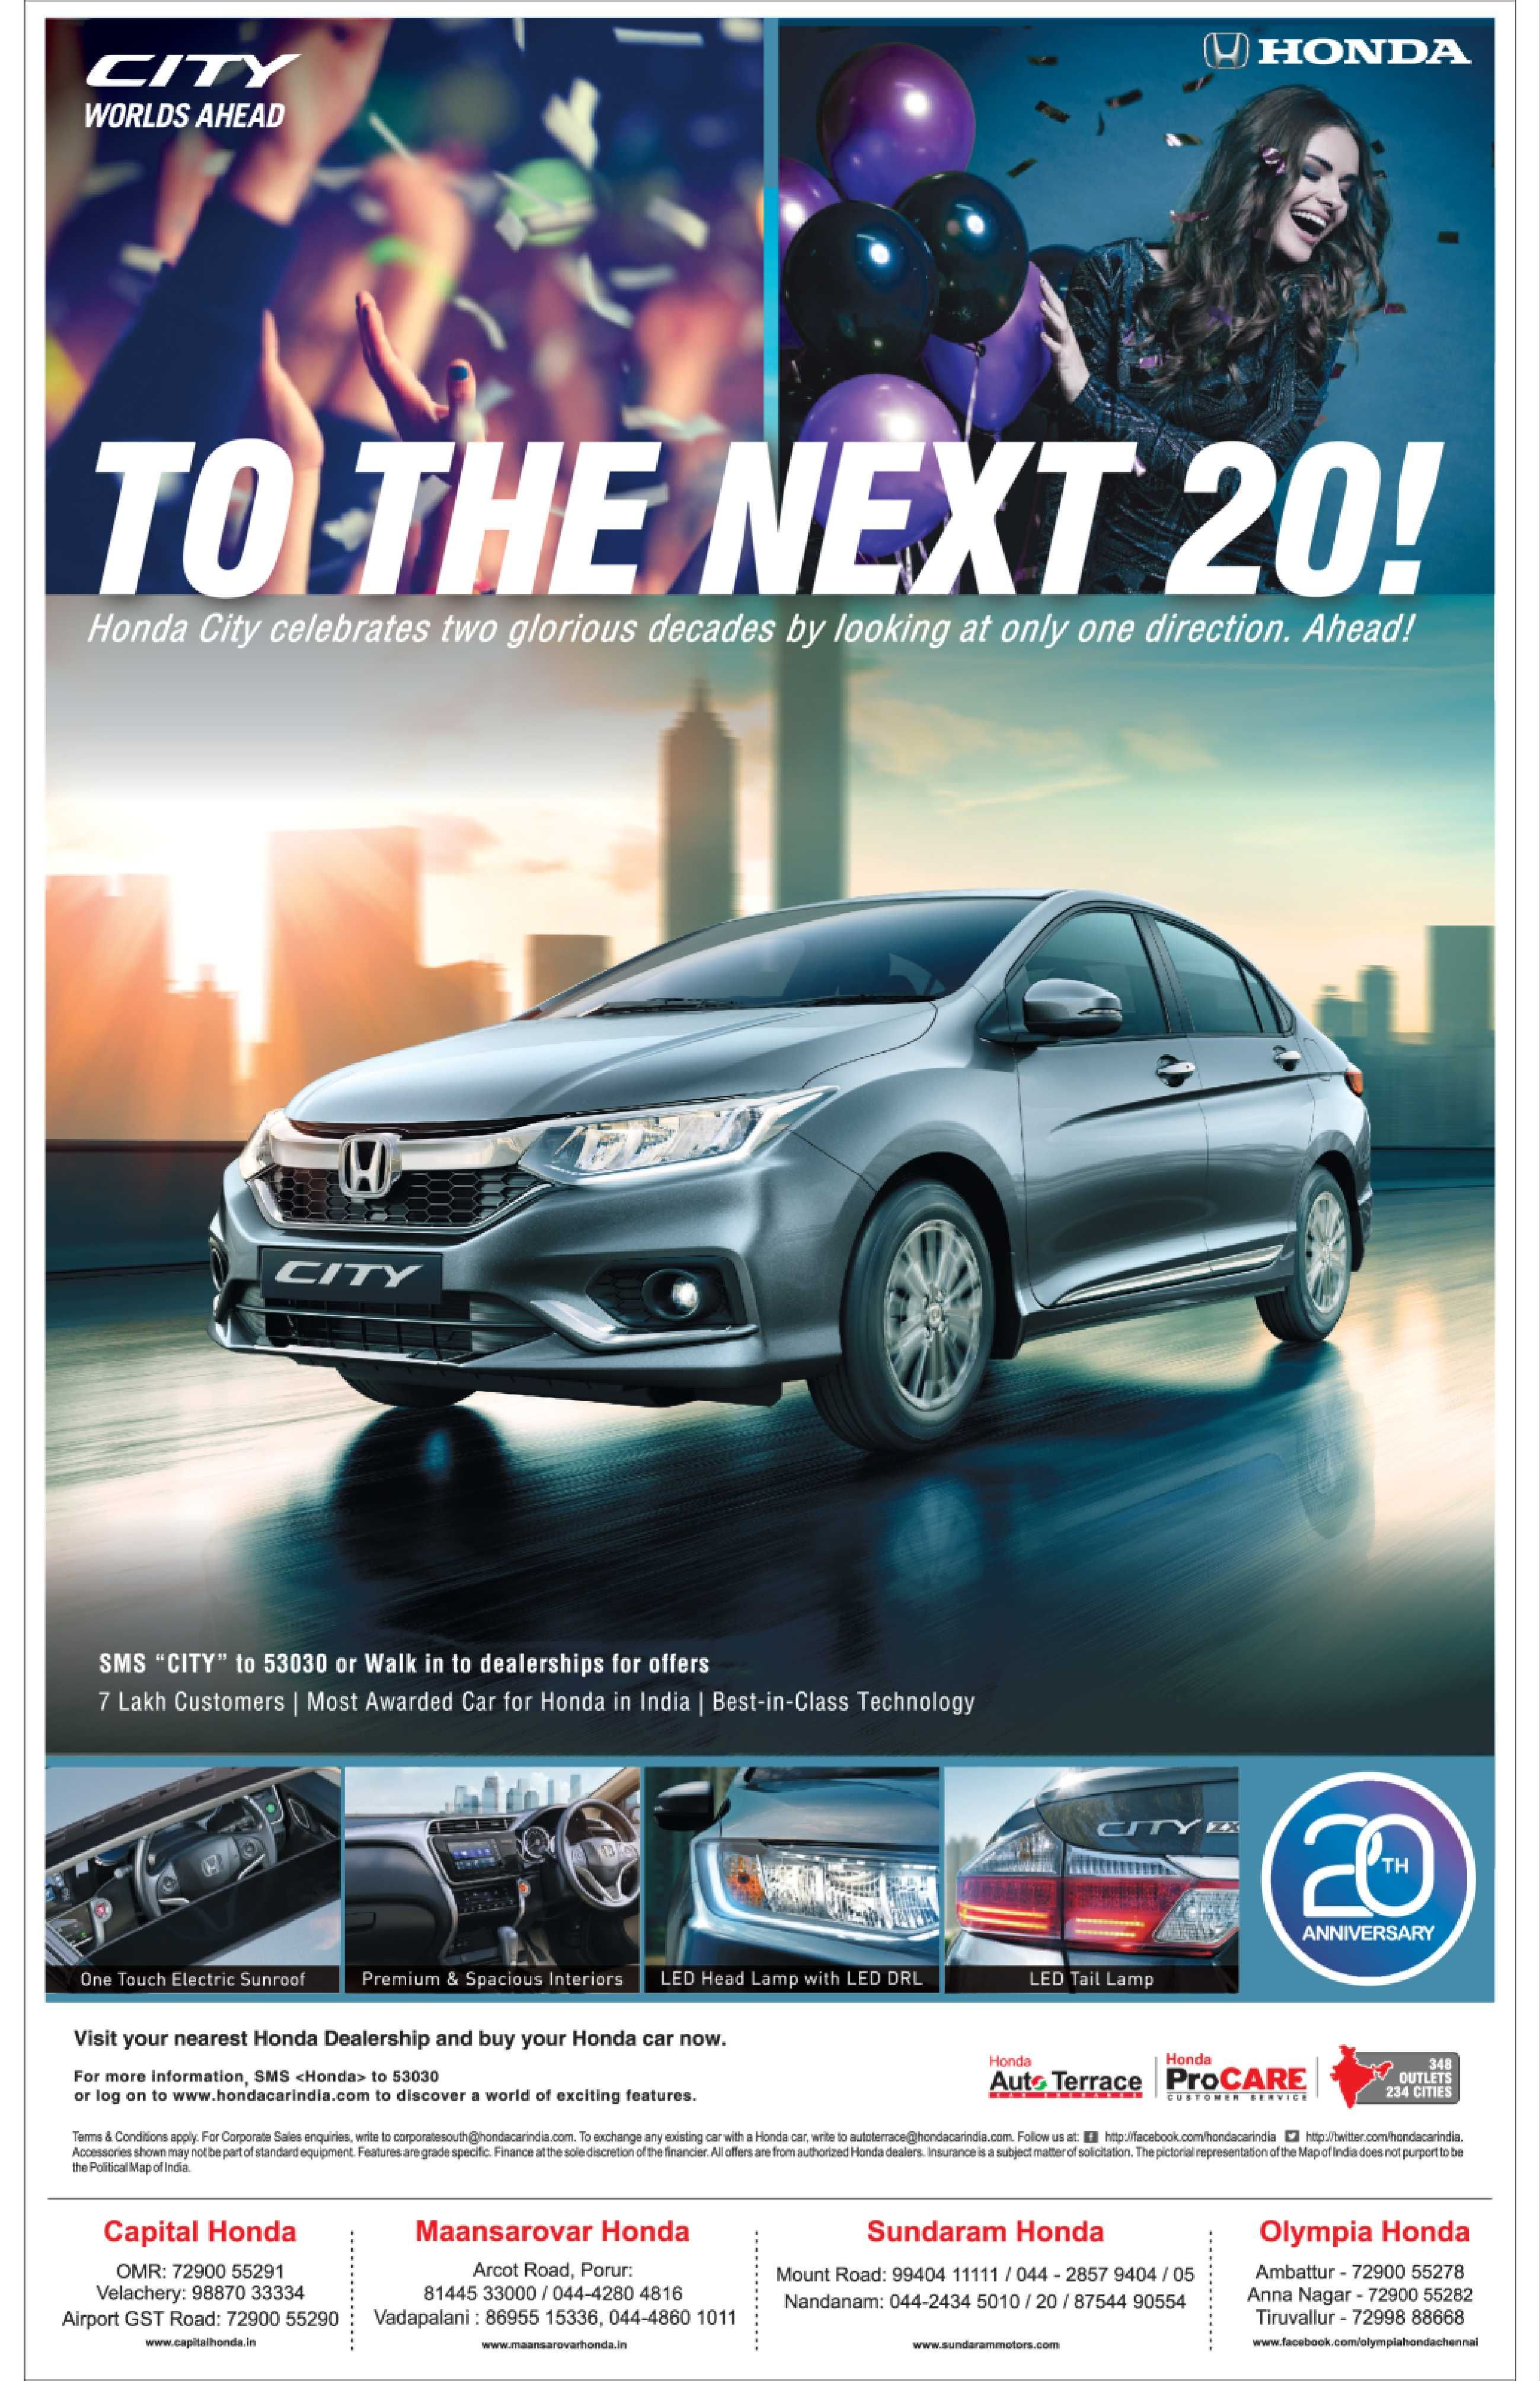 Honda City Worlds Ahead To The Next 20 Ad